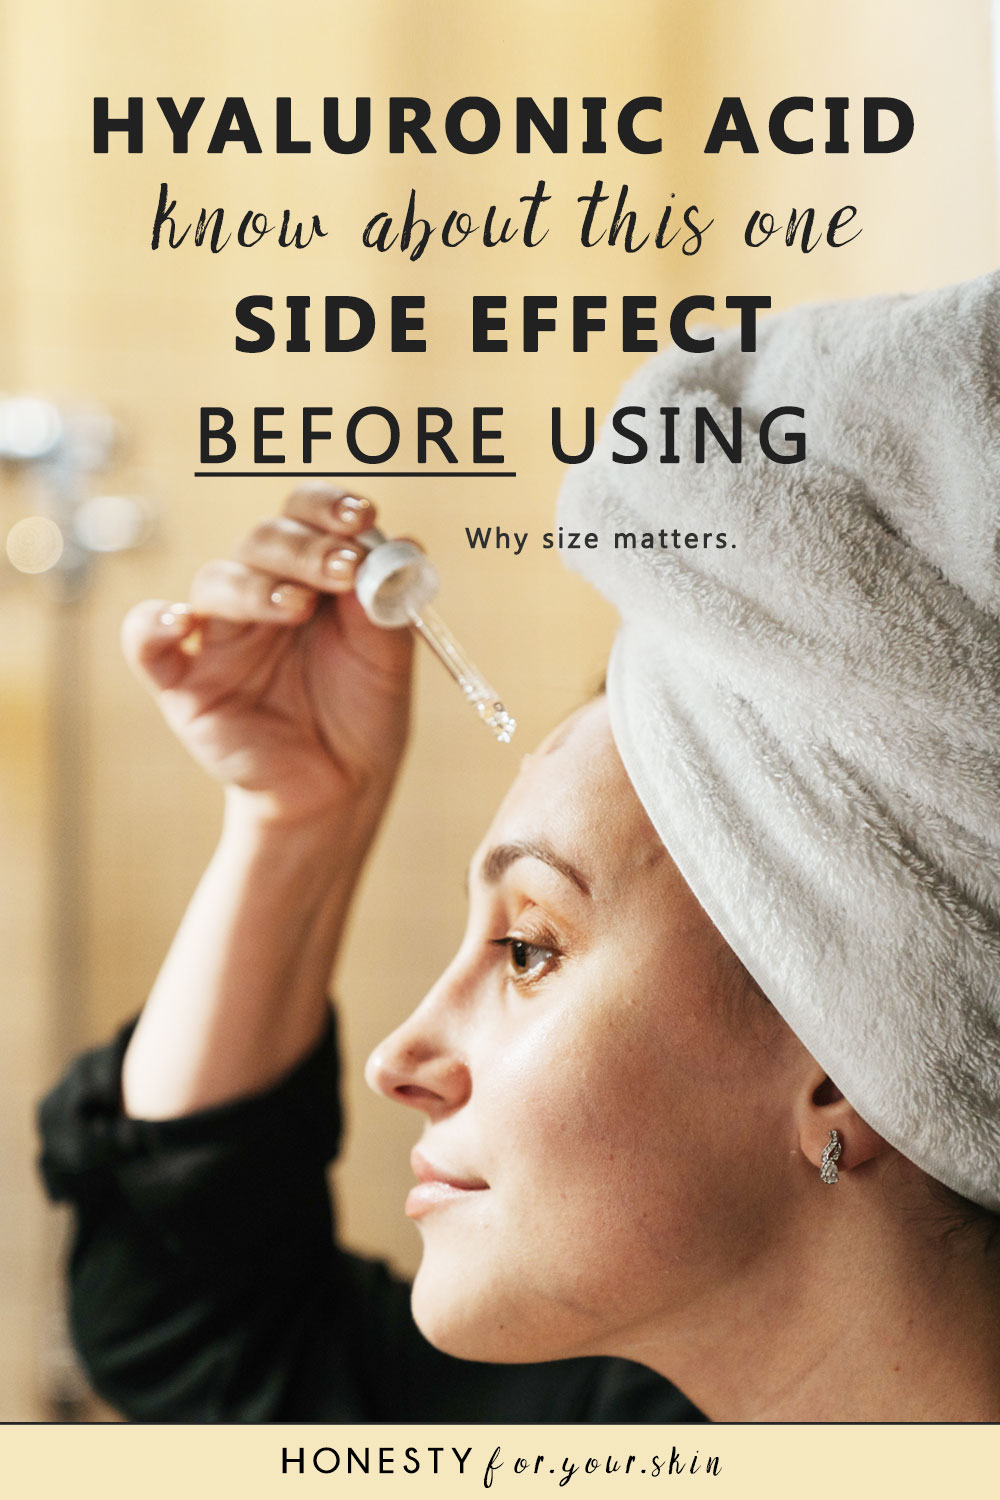 Hyaluronic acid side effects, do you know about them? Don't use hyaluronic acid serum without reading this first. Be safe with your skin.